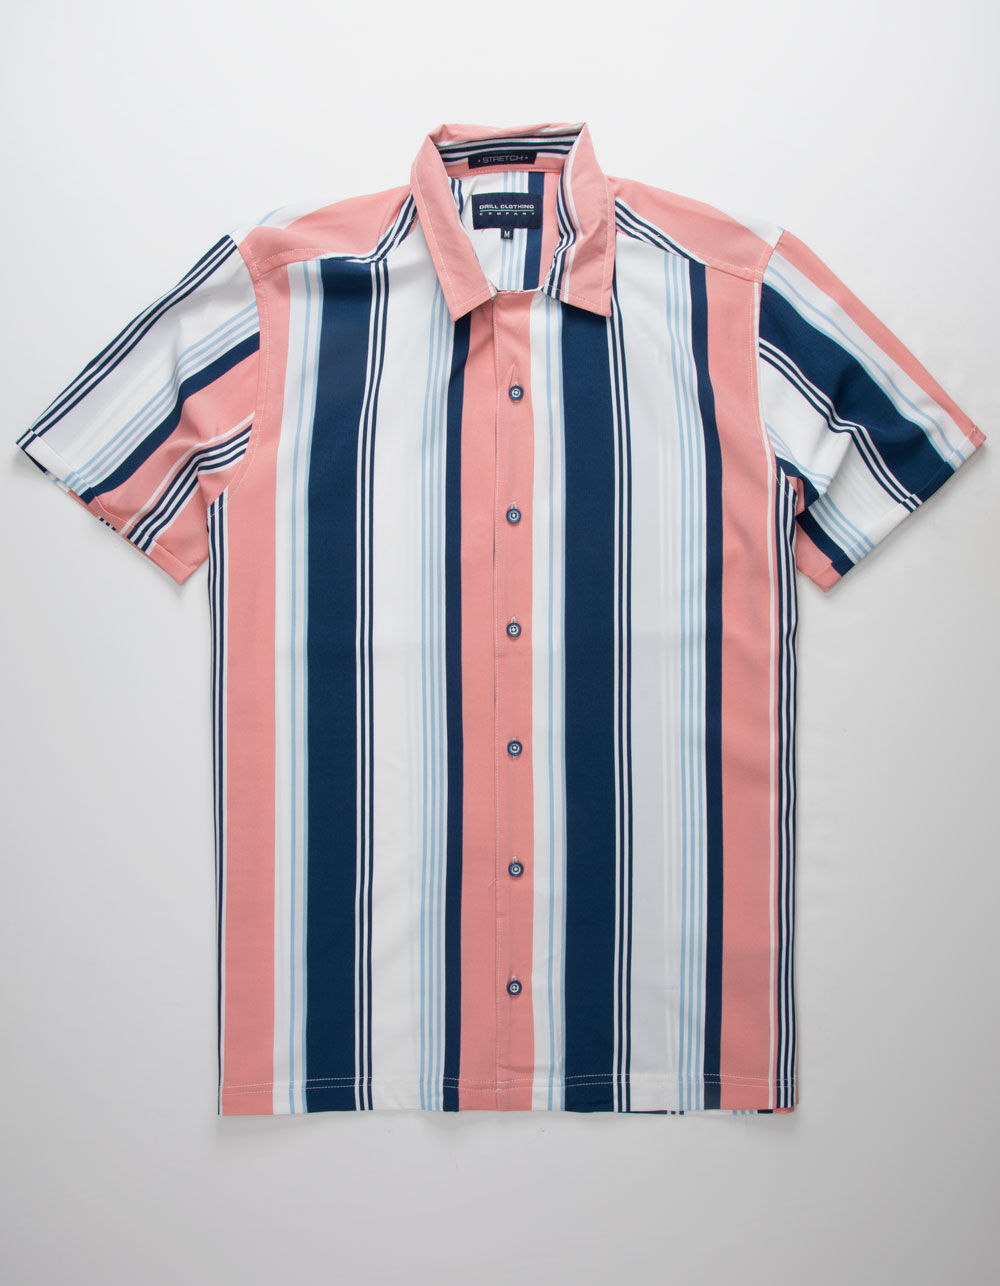 Image of DRILL CLOTHING VERTICAL STRIPE NAVY & WHITE SHIRT